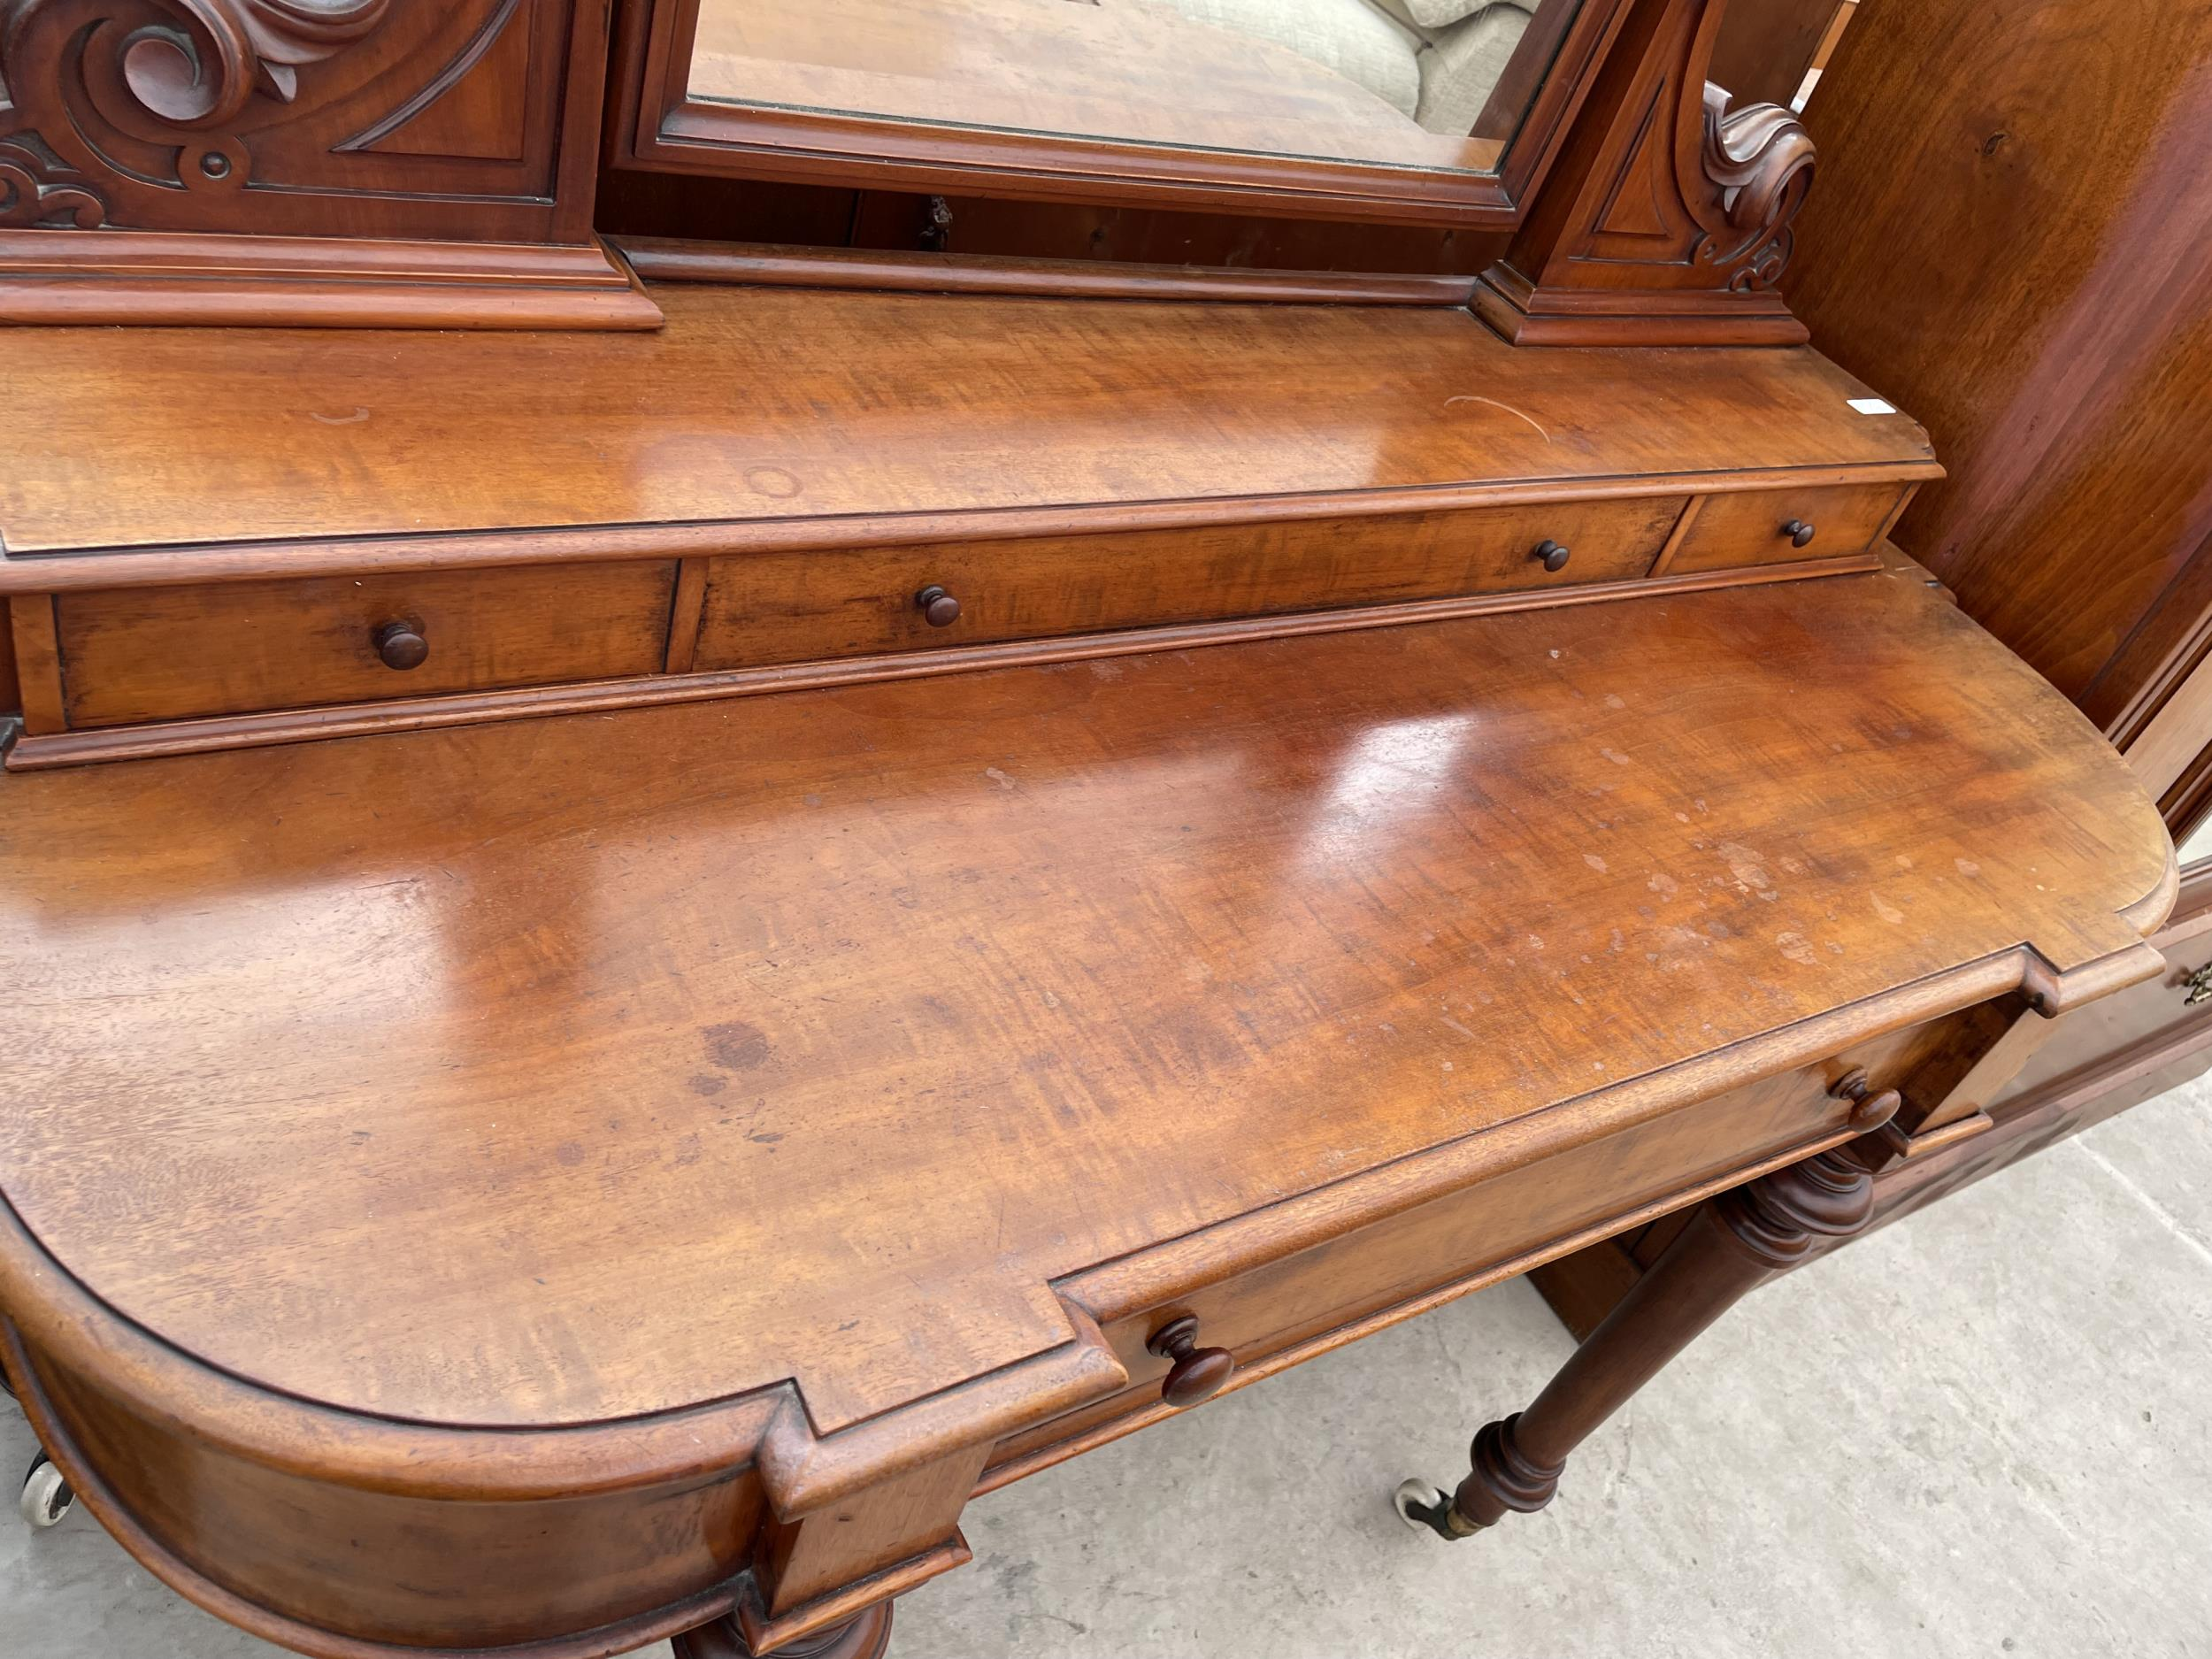 A VICTORIAN MAHOGANY DUCHESS DRESSING TABLE ON TURNED TAPERING LEGS WITH WHITE WIDE P+S PATENT - Image 3 of 4